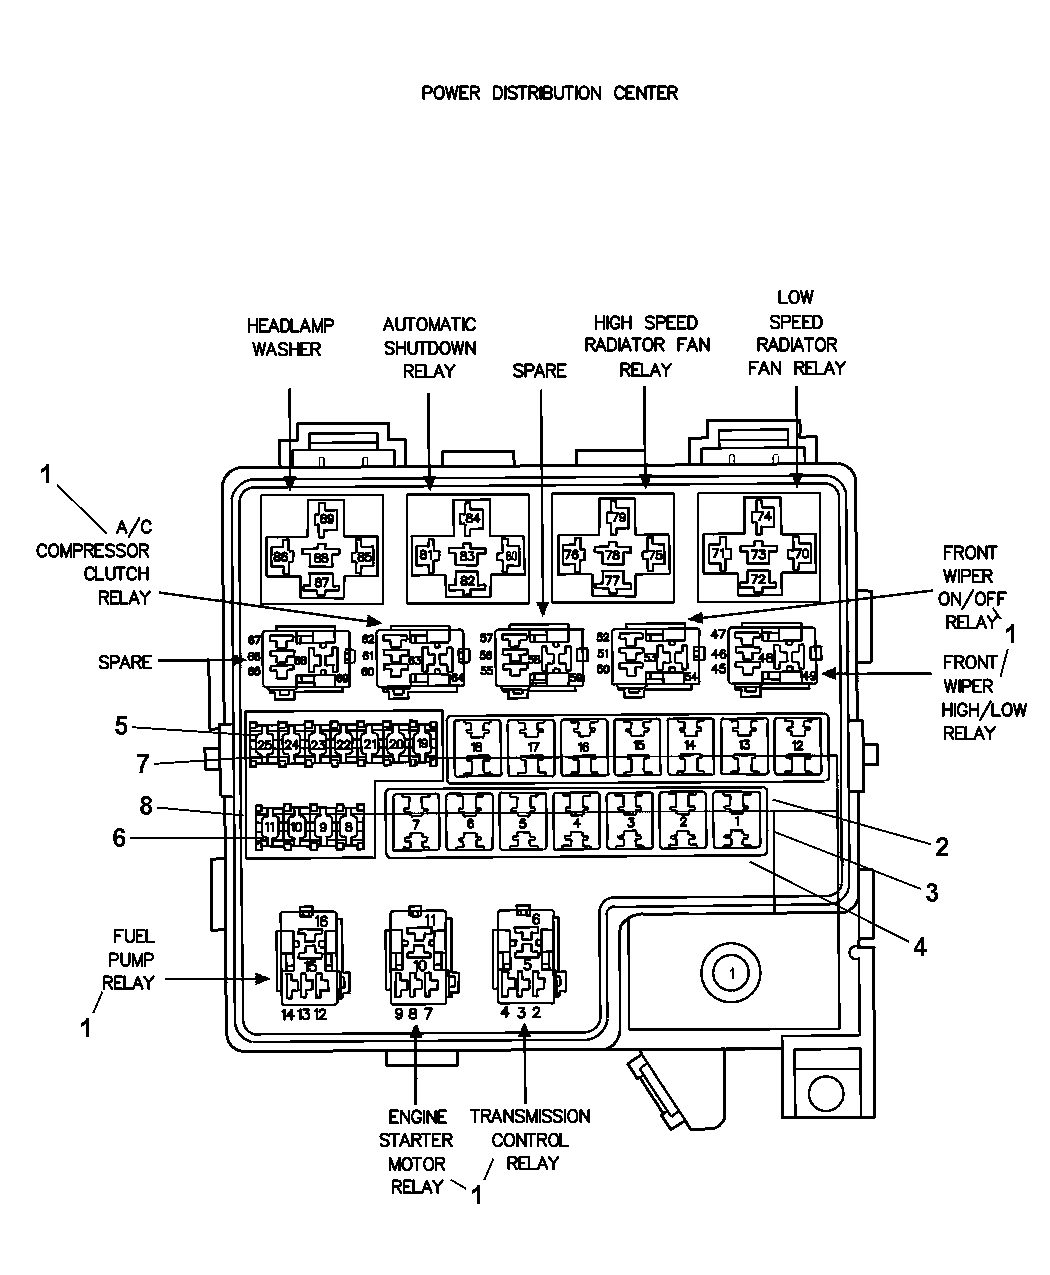 2 5 Dodge Avenger Engine Diagram Wiring Library 7 2010 Power Distribution Center